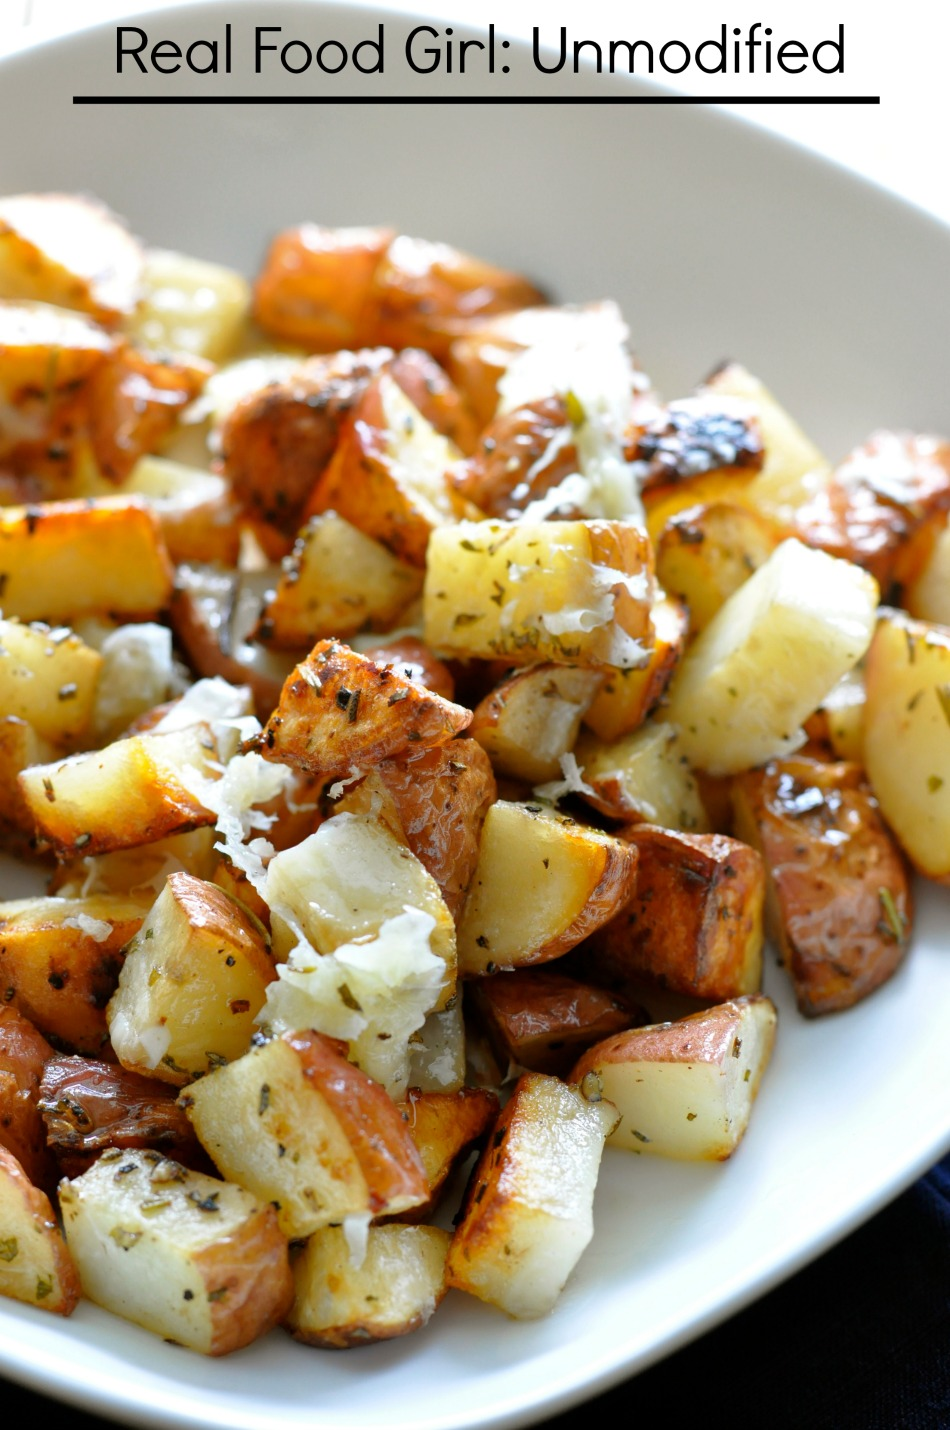 Grilled Parmesan-Herbed Potatoes by Real Food Girl: Unmodified